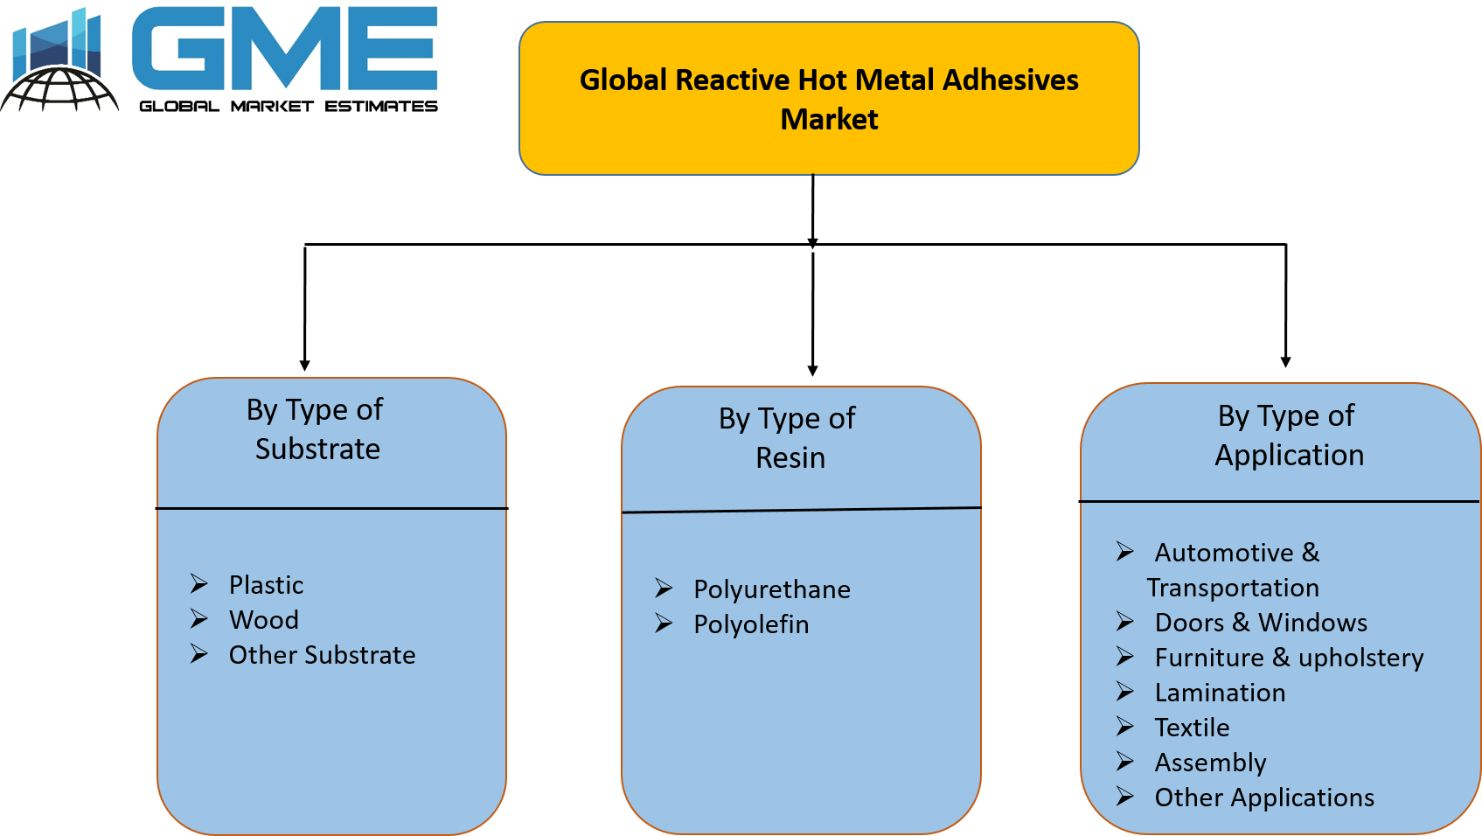 Global Reactive Hot Metal Adhesives Market Segmentation